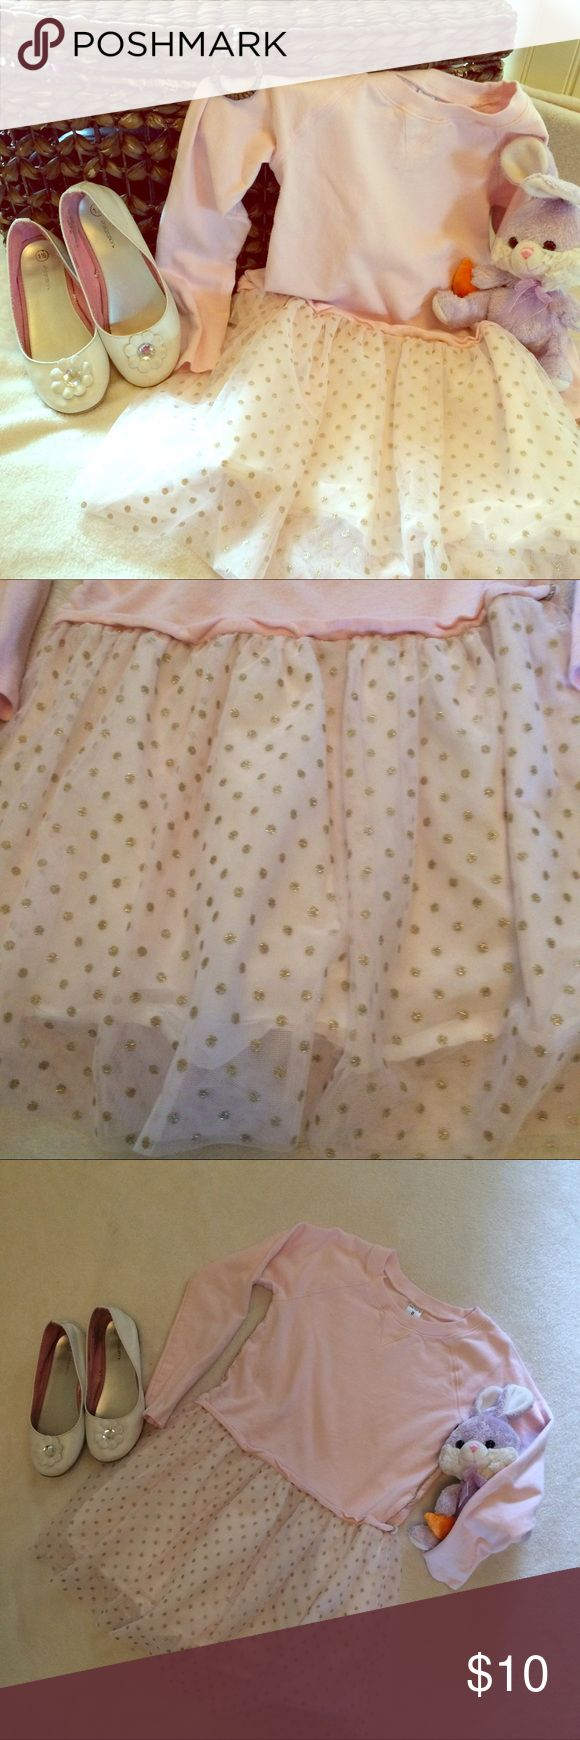 Girls carters dress size 8 pink w glitter Girls carters dress size 8 pink w glitter. My daughter worn it once. Pre washed. Body is cotton with tule skirt with golden sparkly polka dots. Good for a dressy day at the park or school. Bundle with other 6 or 8 clothes to make it worth. Carter's Dresses Casual